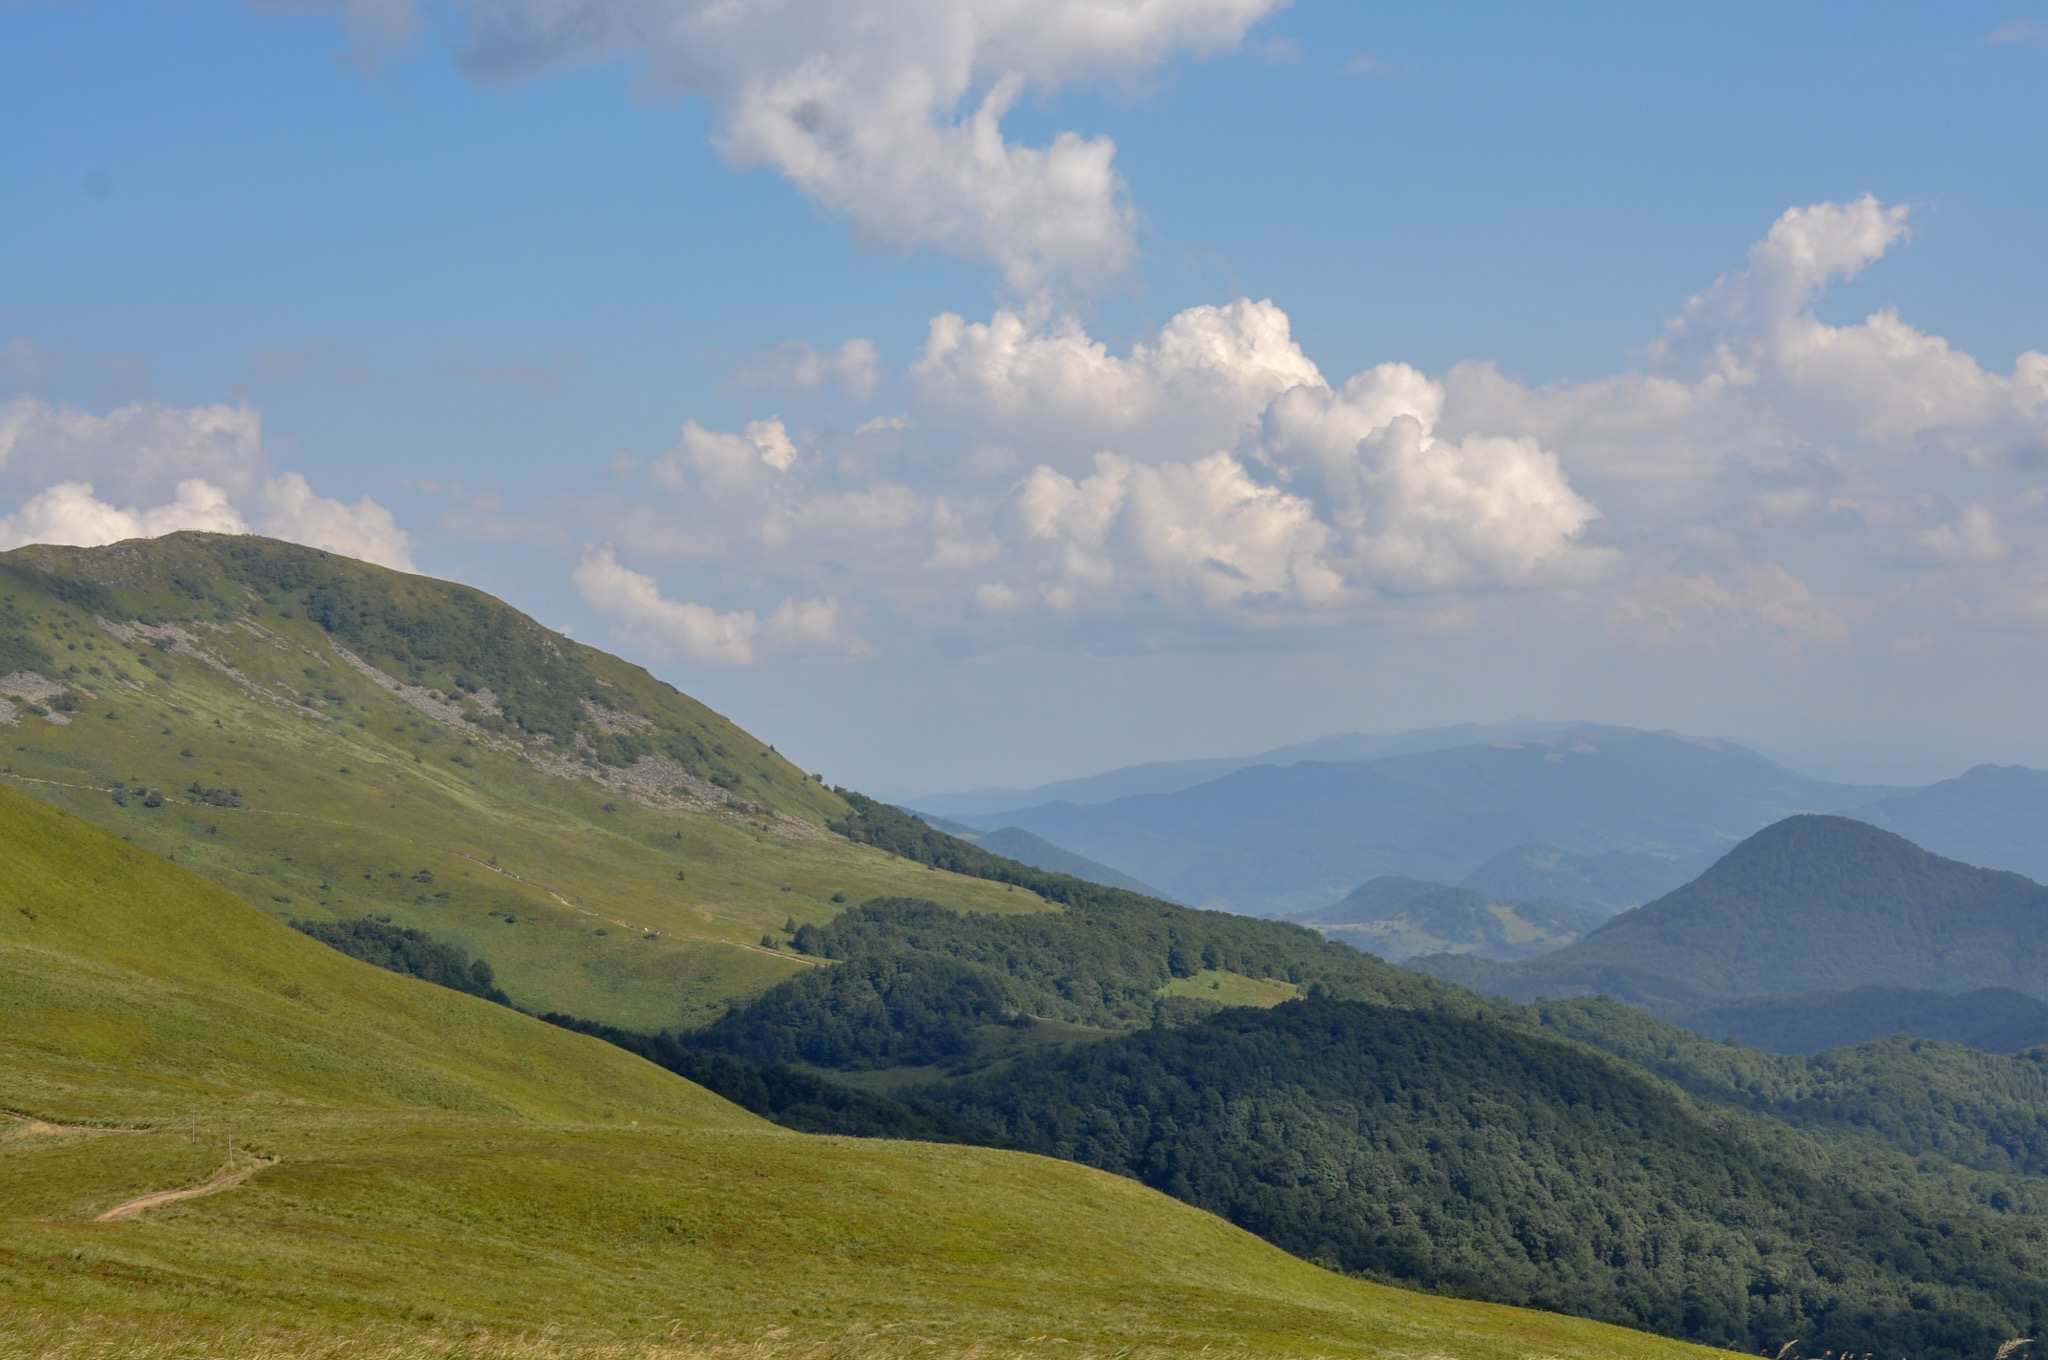 Poloniny and valleys in the Bieszczady Mountains